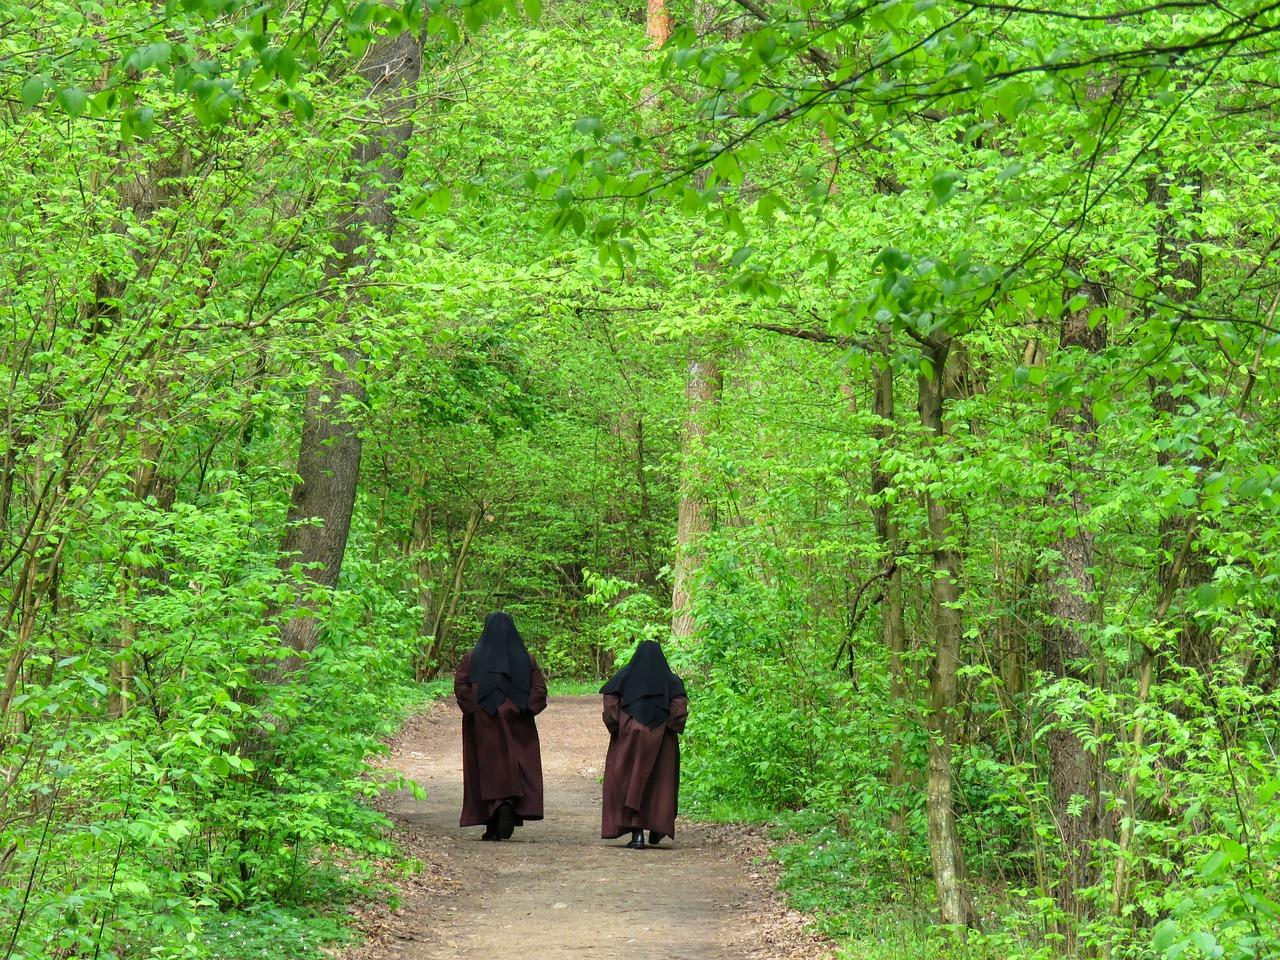 Two nuns pregnant after mission in Africa: Catholic Church starts investigation